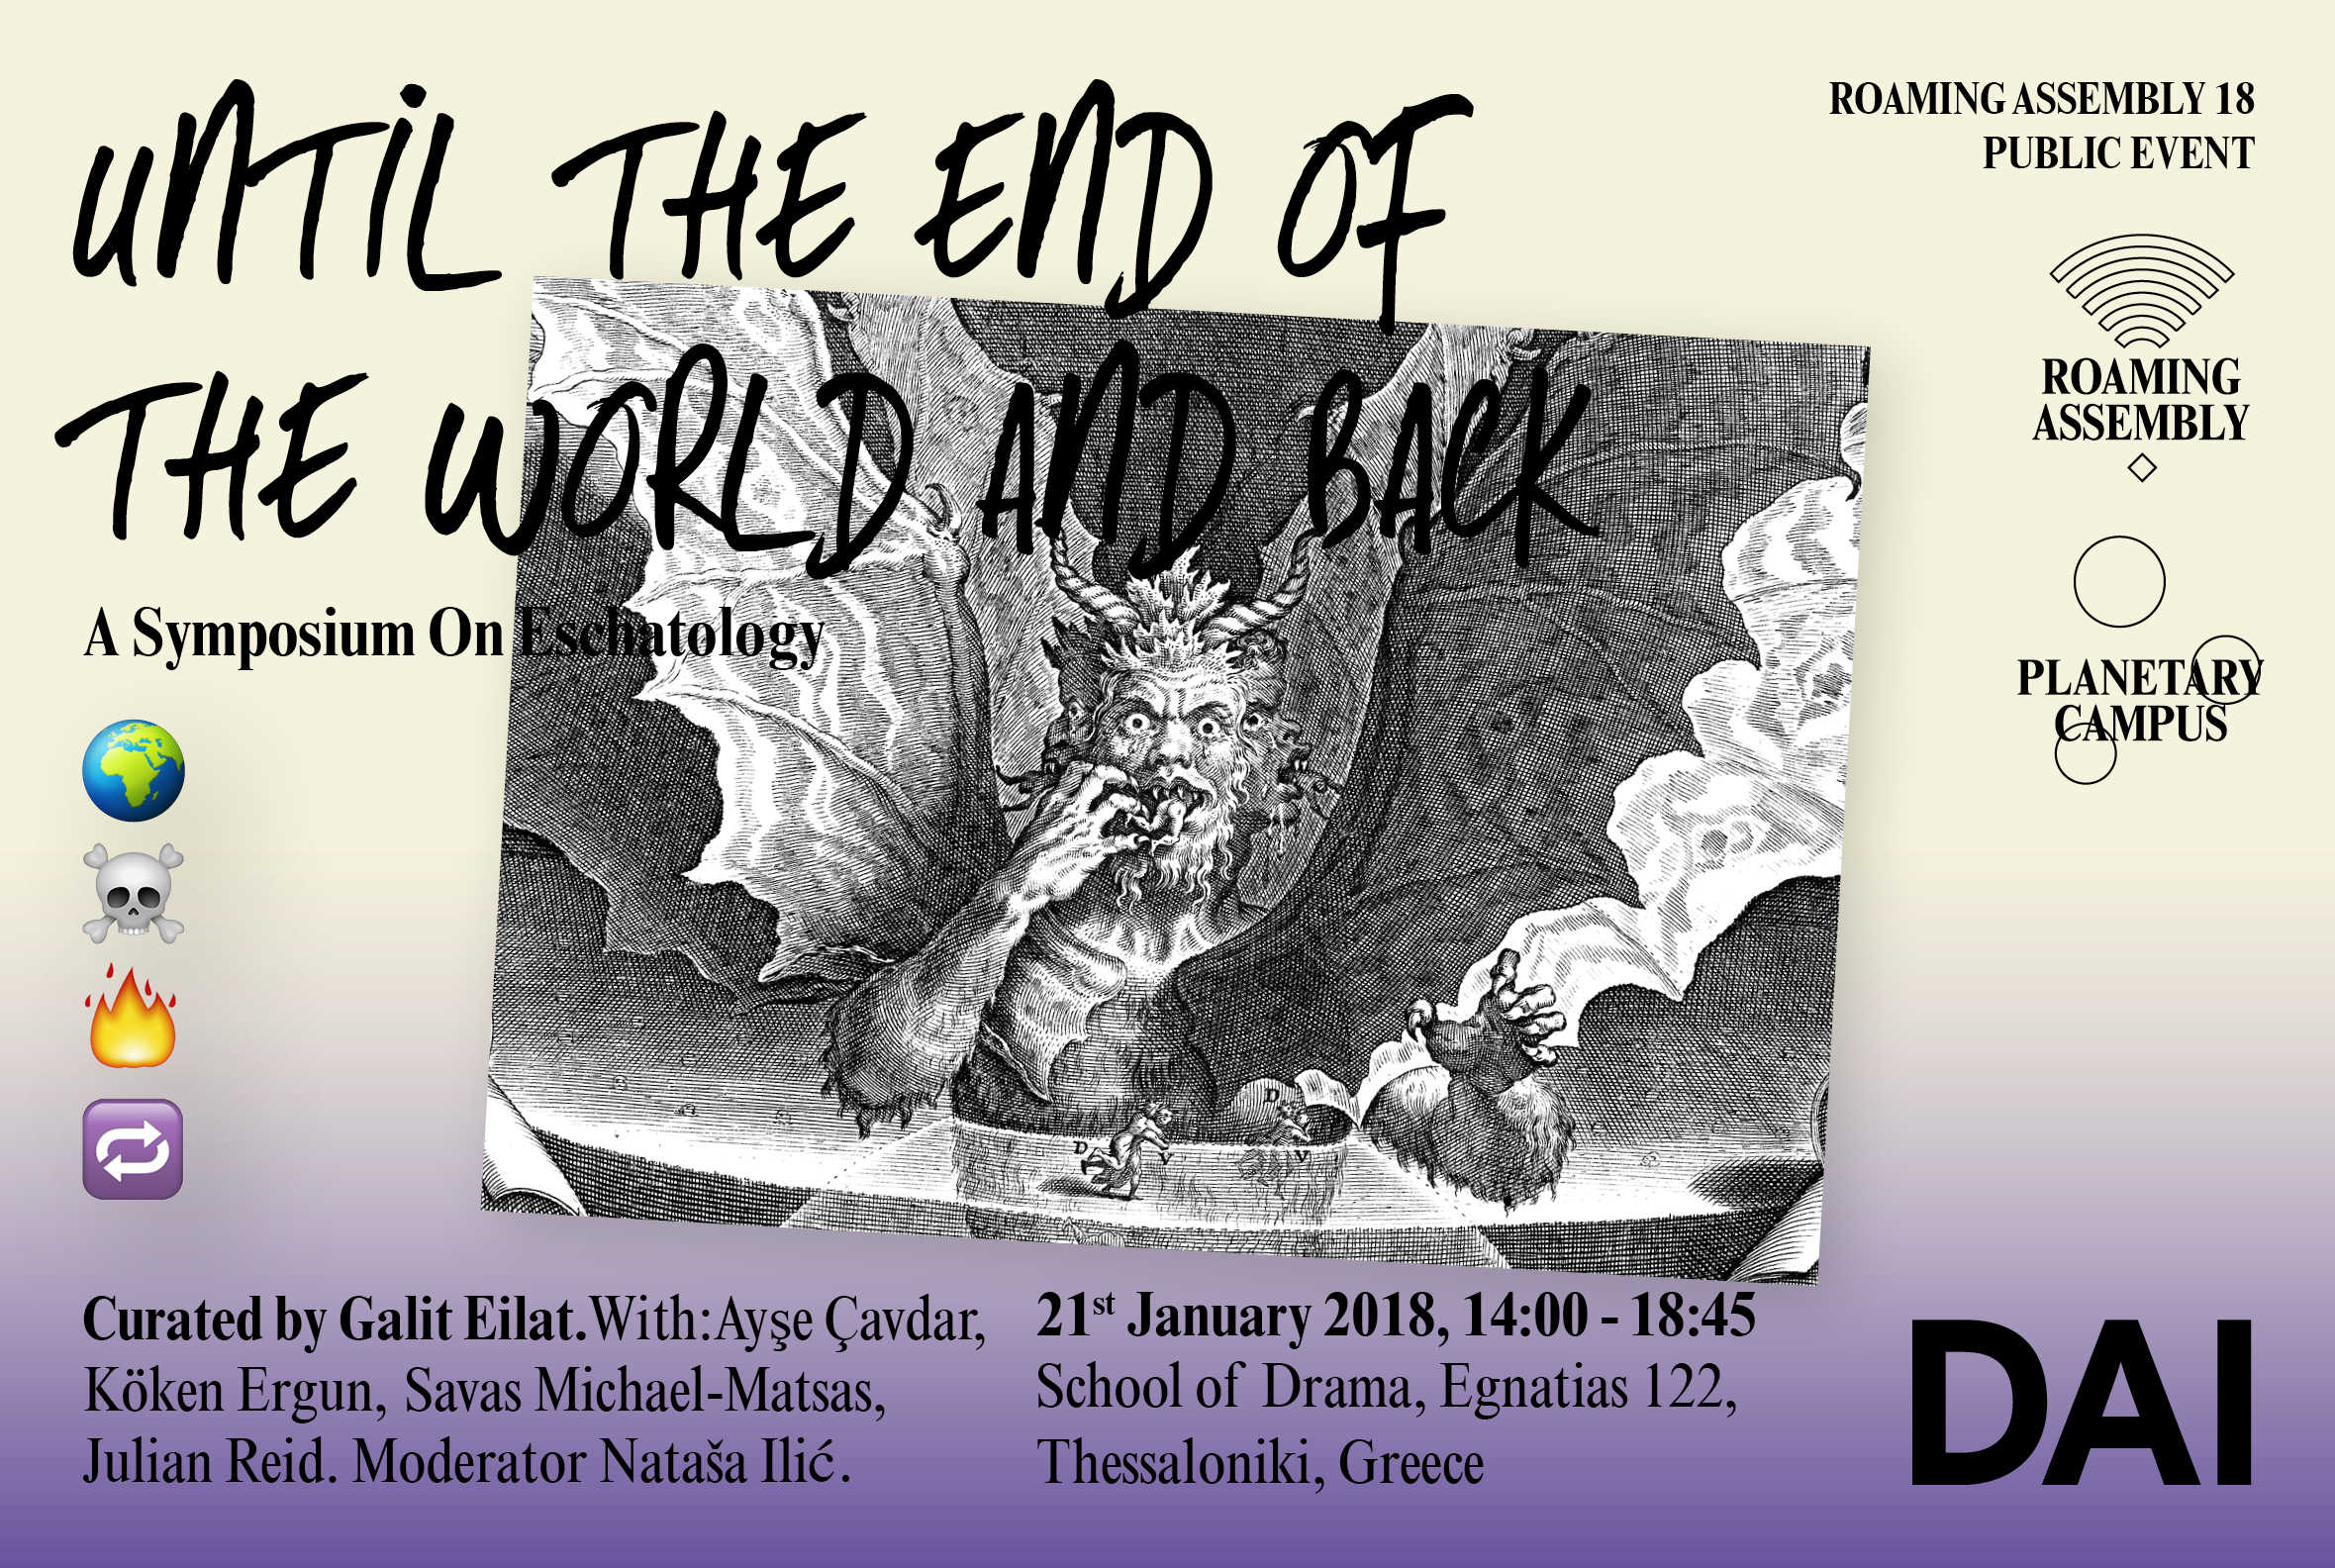 sunday-january-21-roaming-assembly-18-until-the-end-of-the-world-and-back